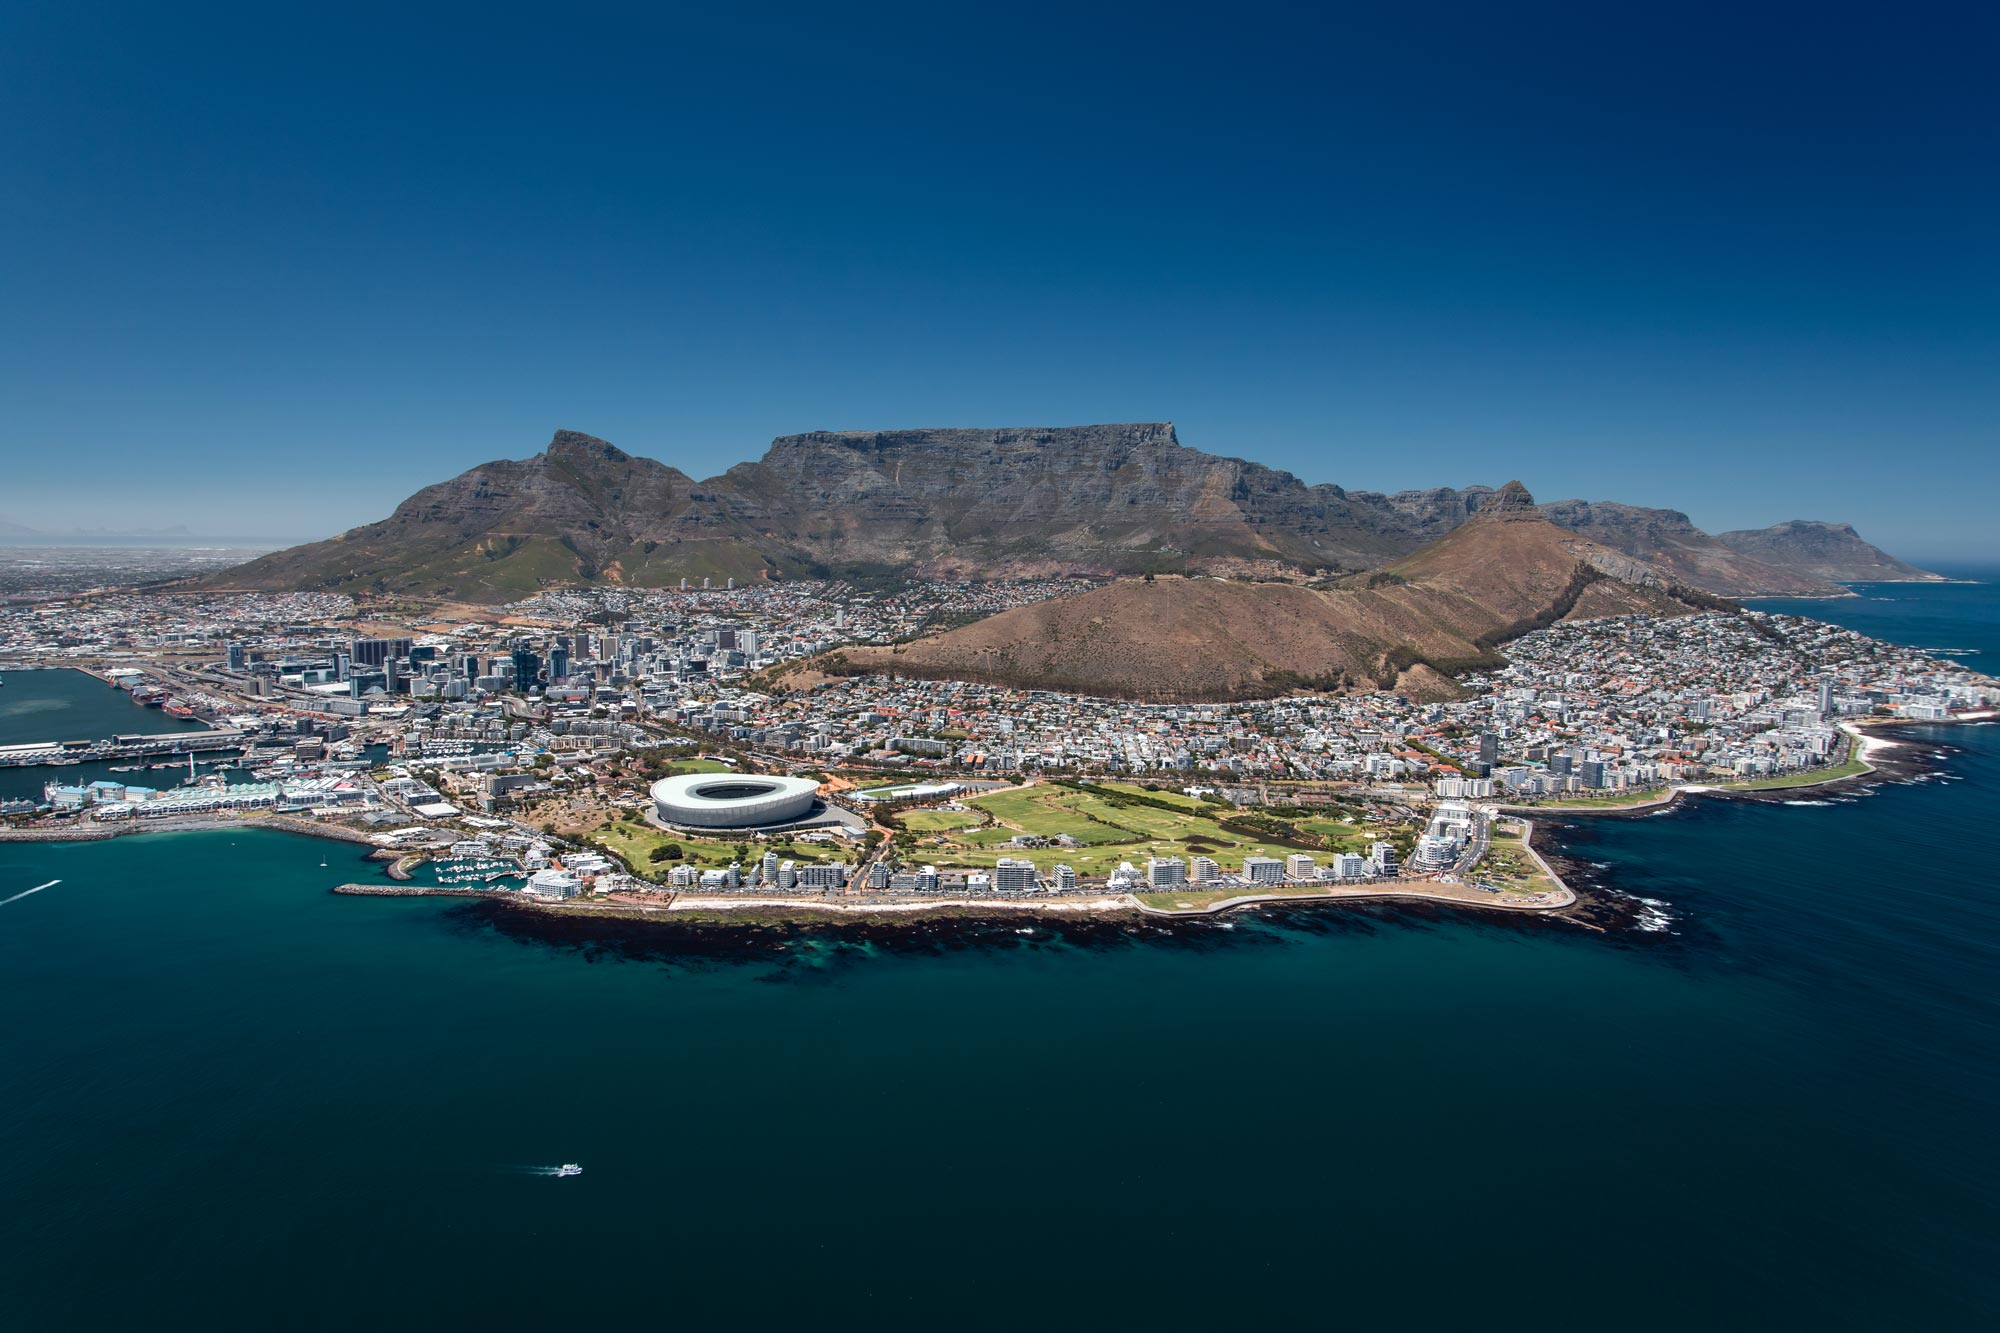 Cape-Town-Overview---Do-not-use-without-permission